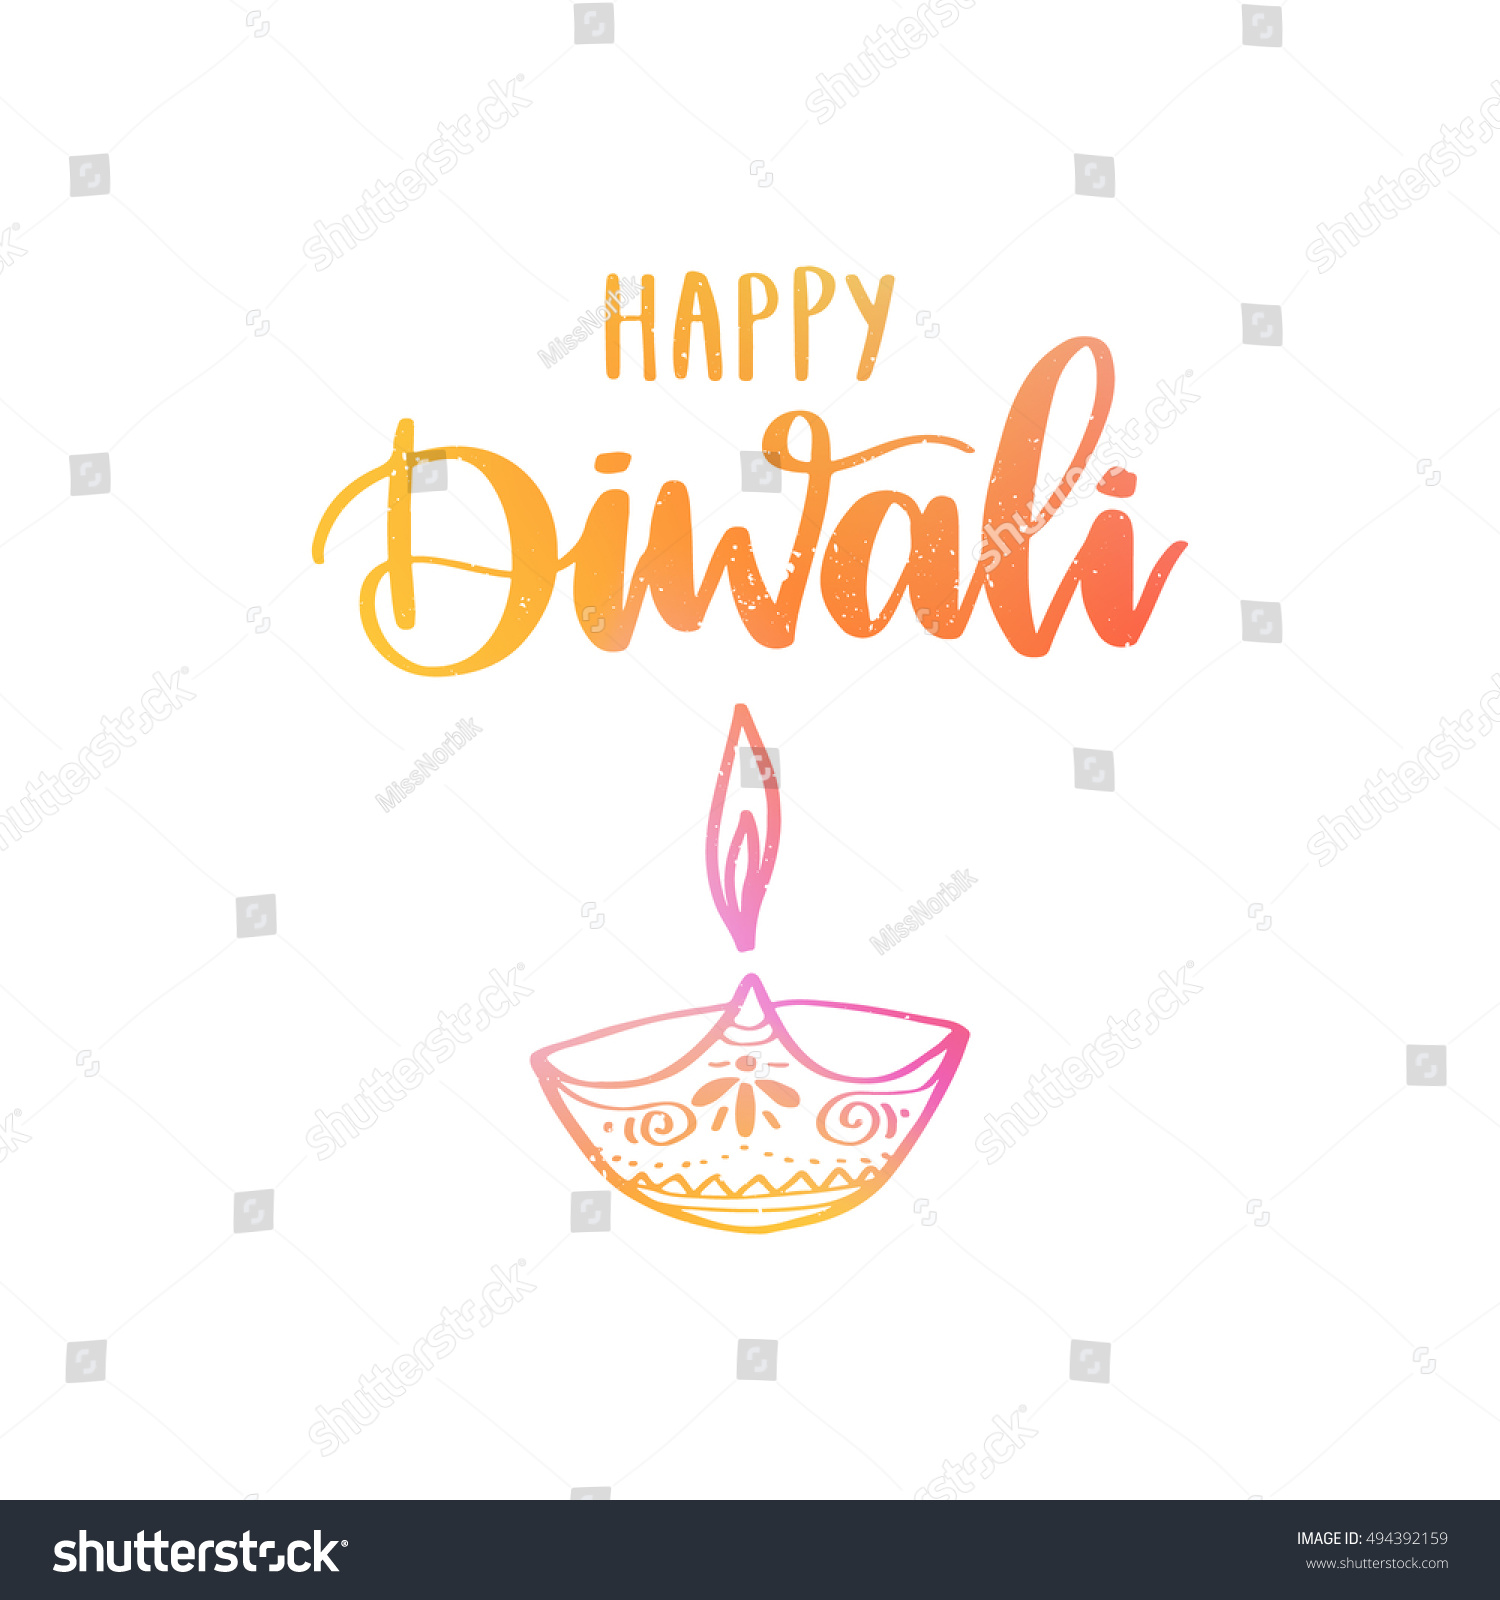 Diwali Black And White Pictures Vector Hand Drawn Greeting Card Happy Stock Vector